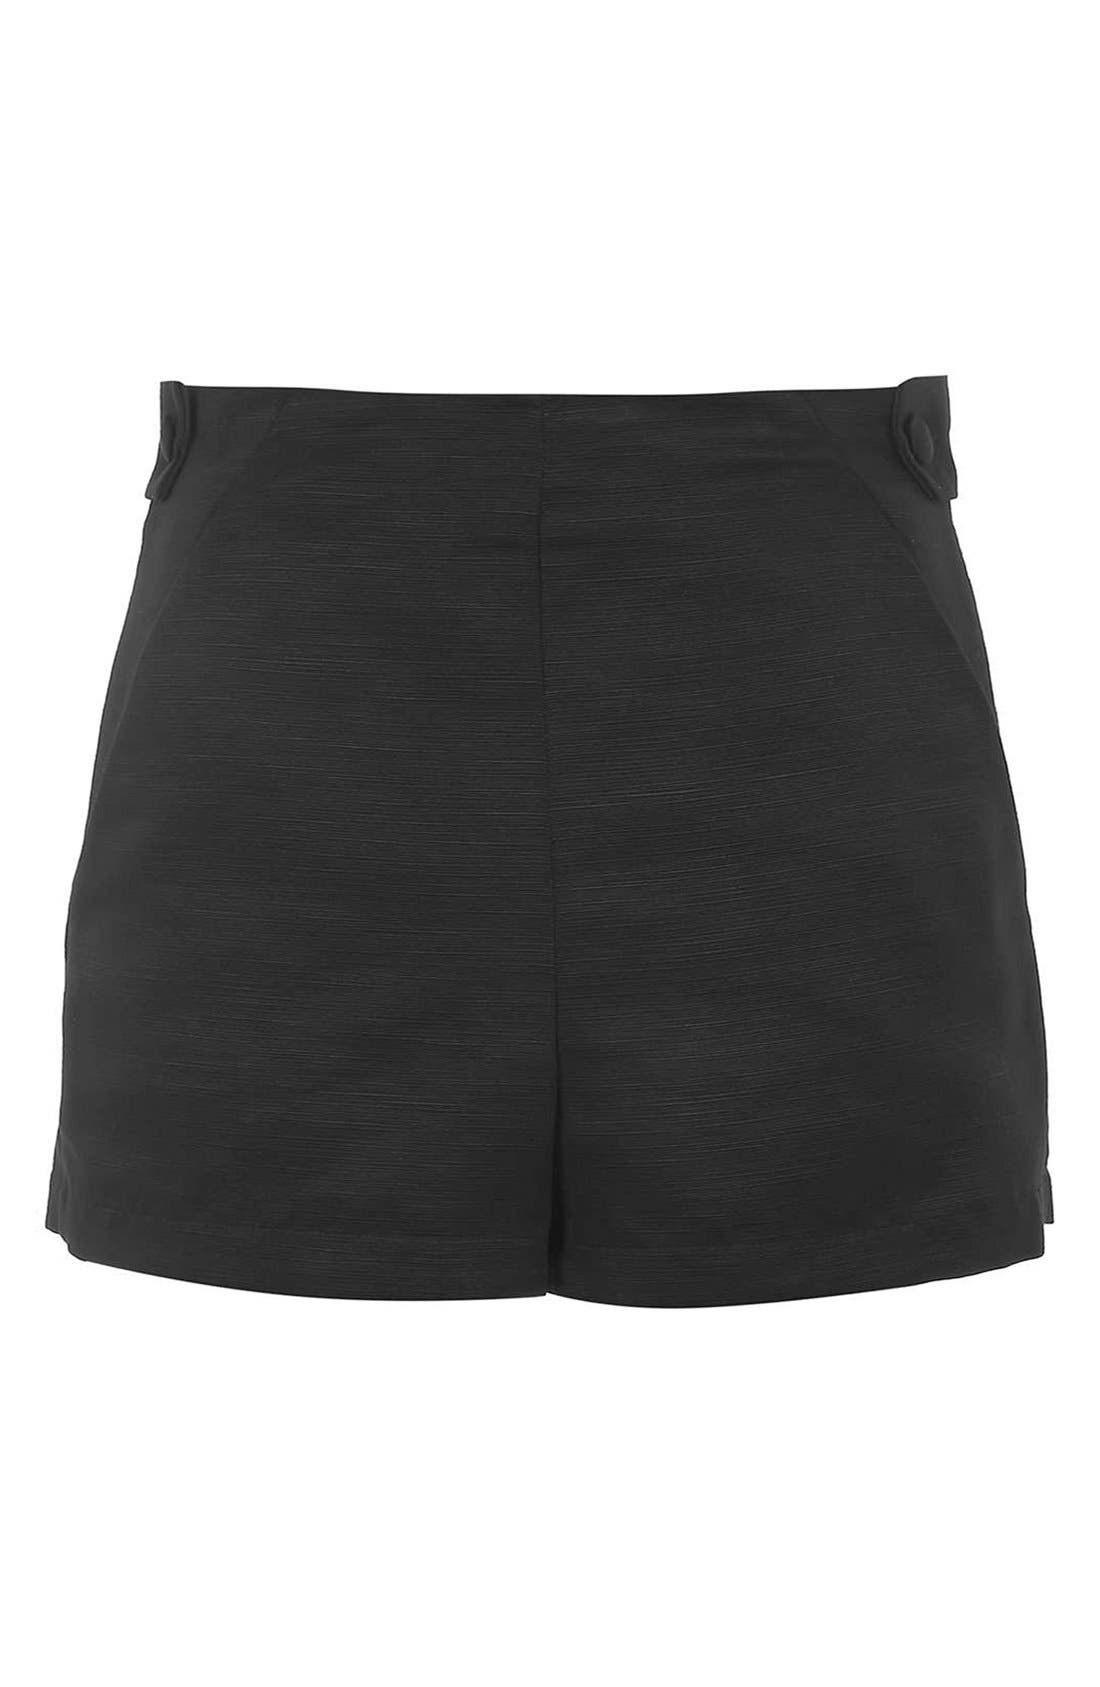 TOPSHOP, High Rise Button Tab Shorts, Alternate thumbnail 3, color, 001